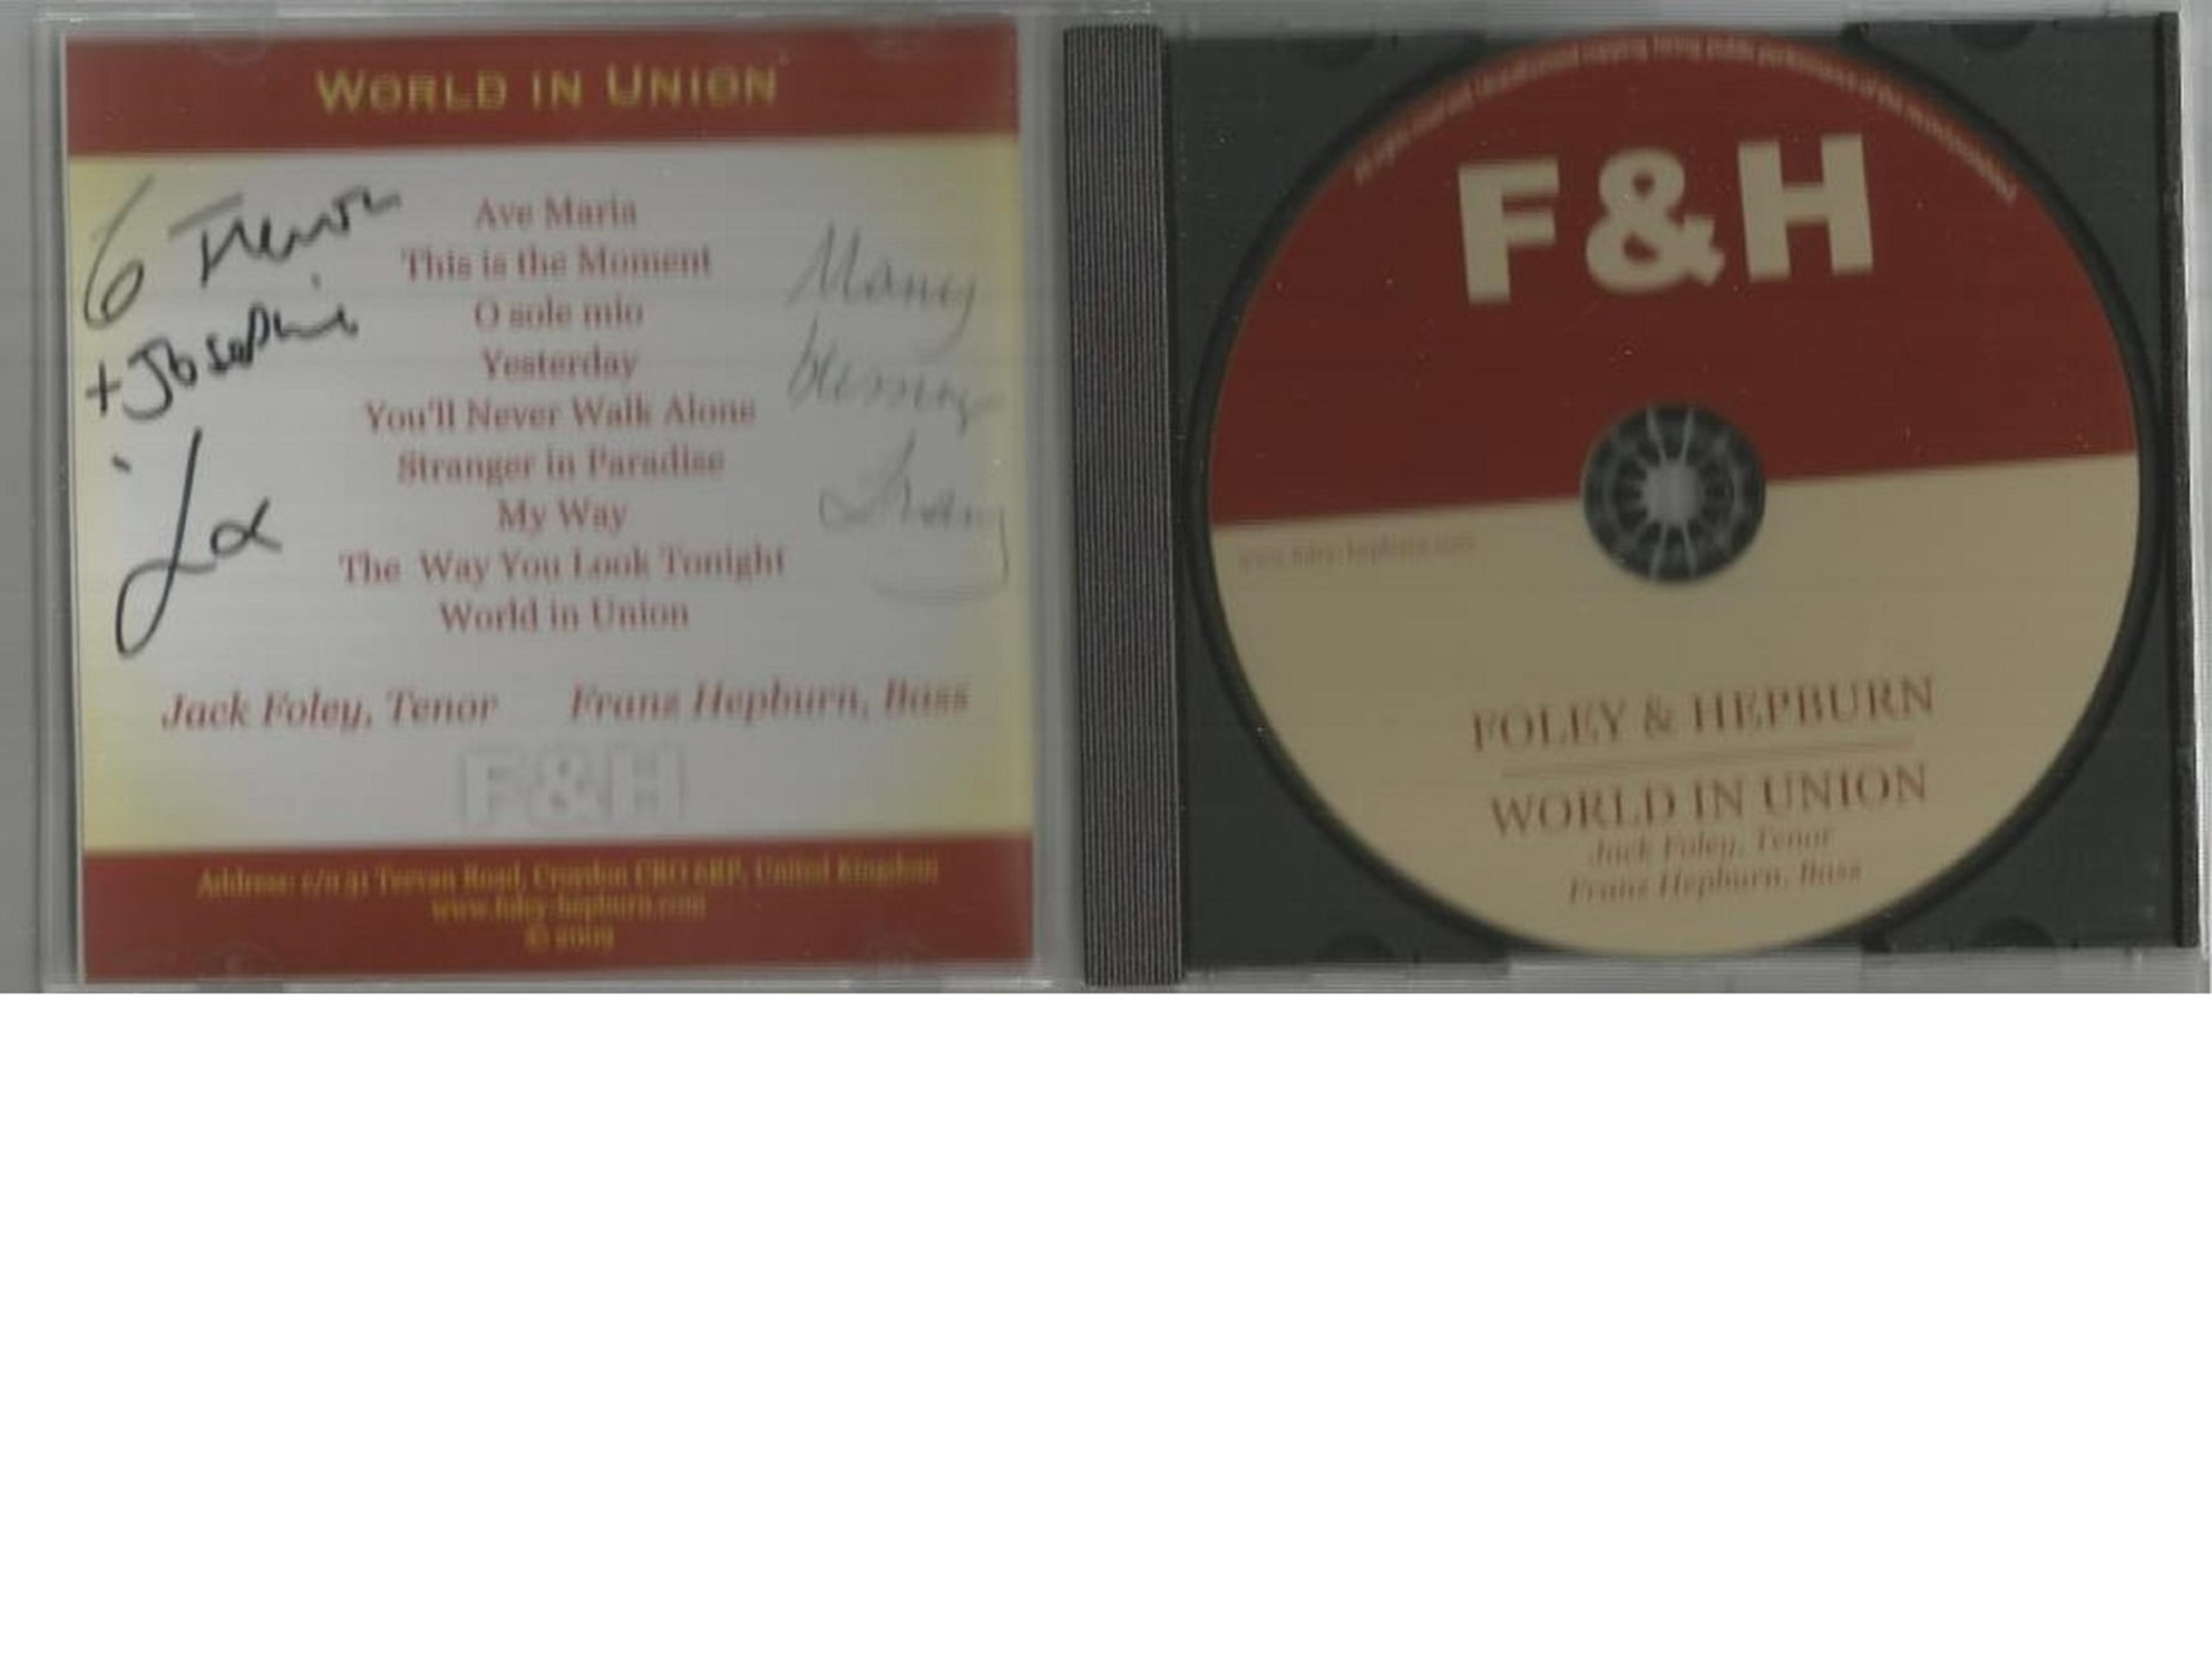 6 Signed CDs Including Andrea Ross Moon River Disc Included, Foley and Hepburn Con Te Partiro Disc - Image 4 of 6